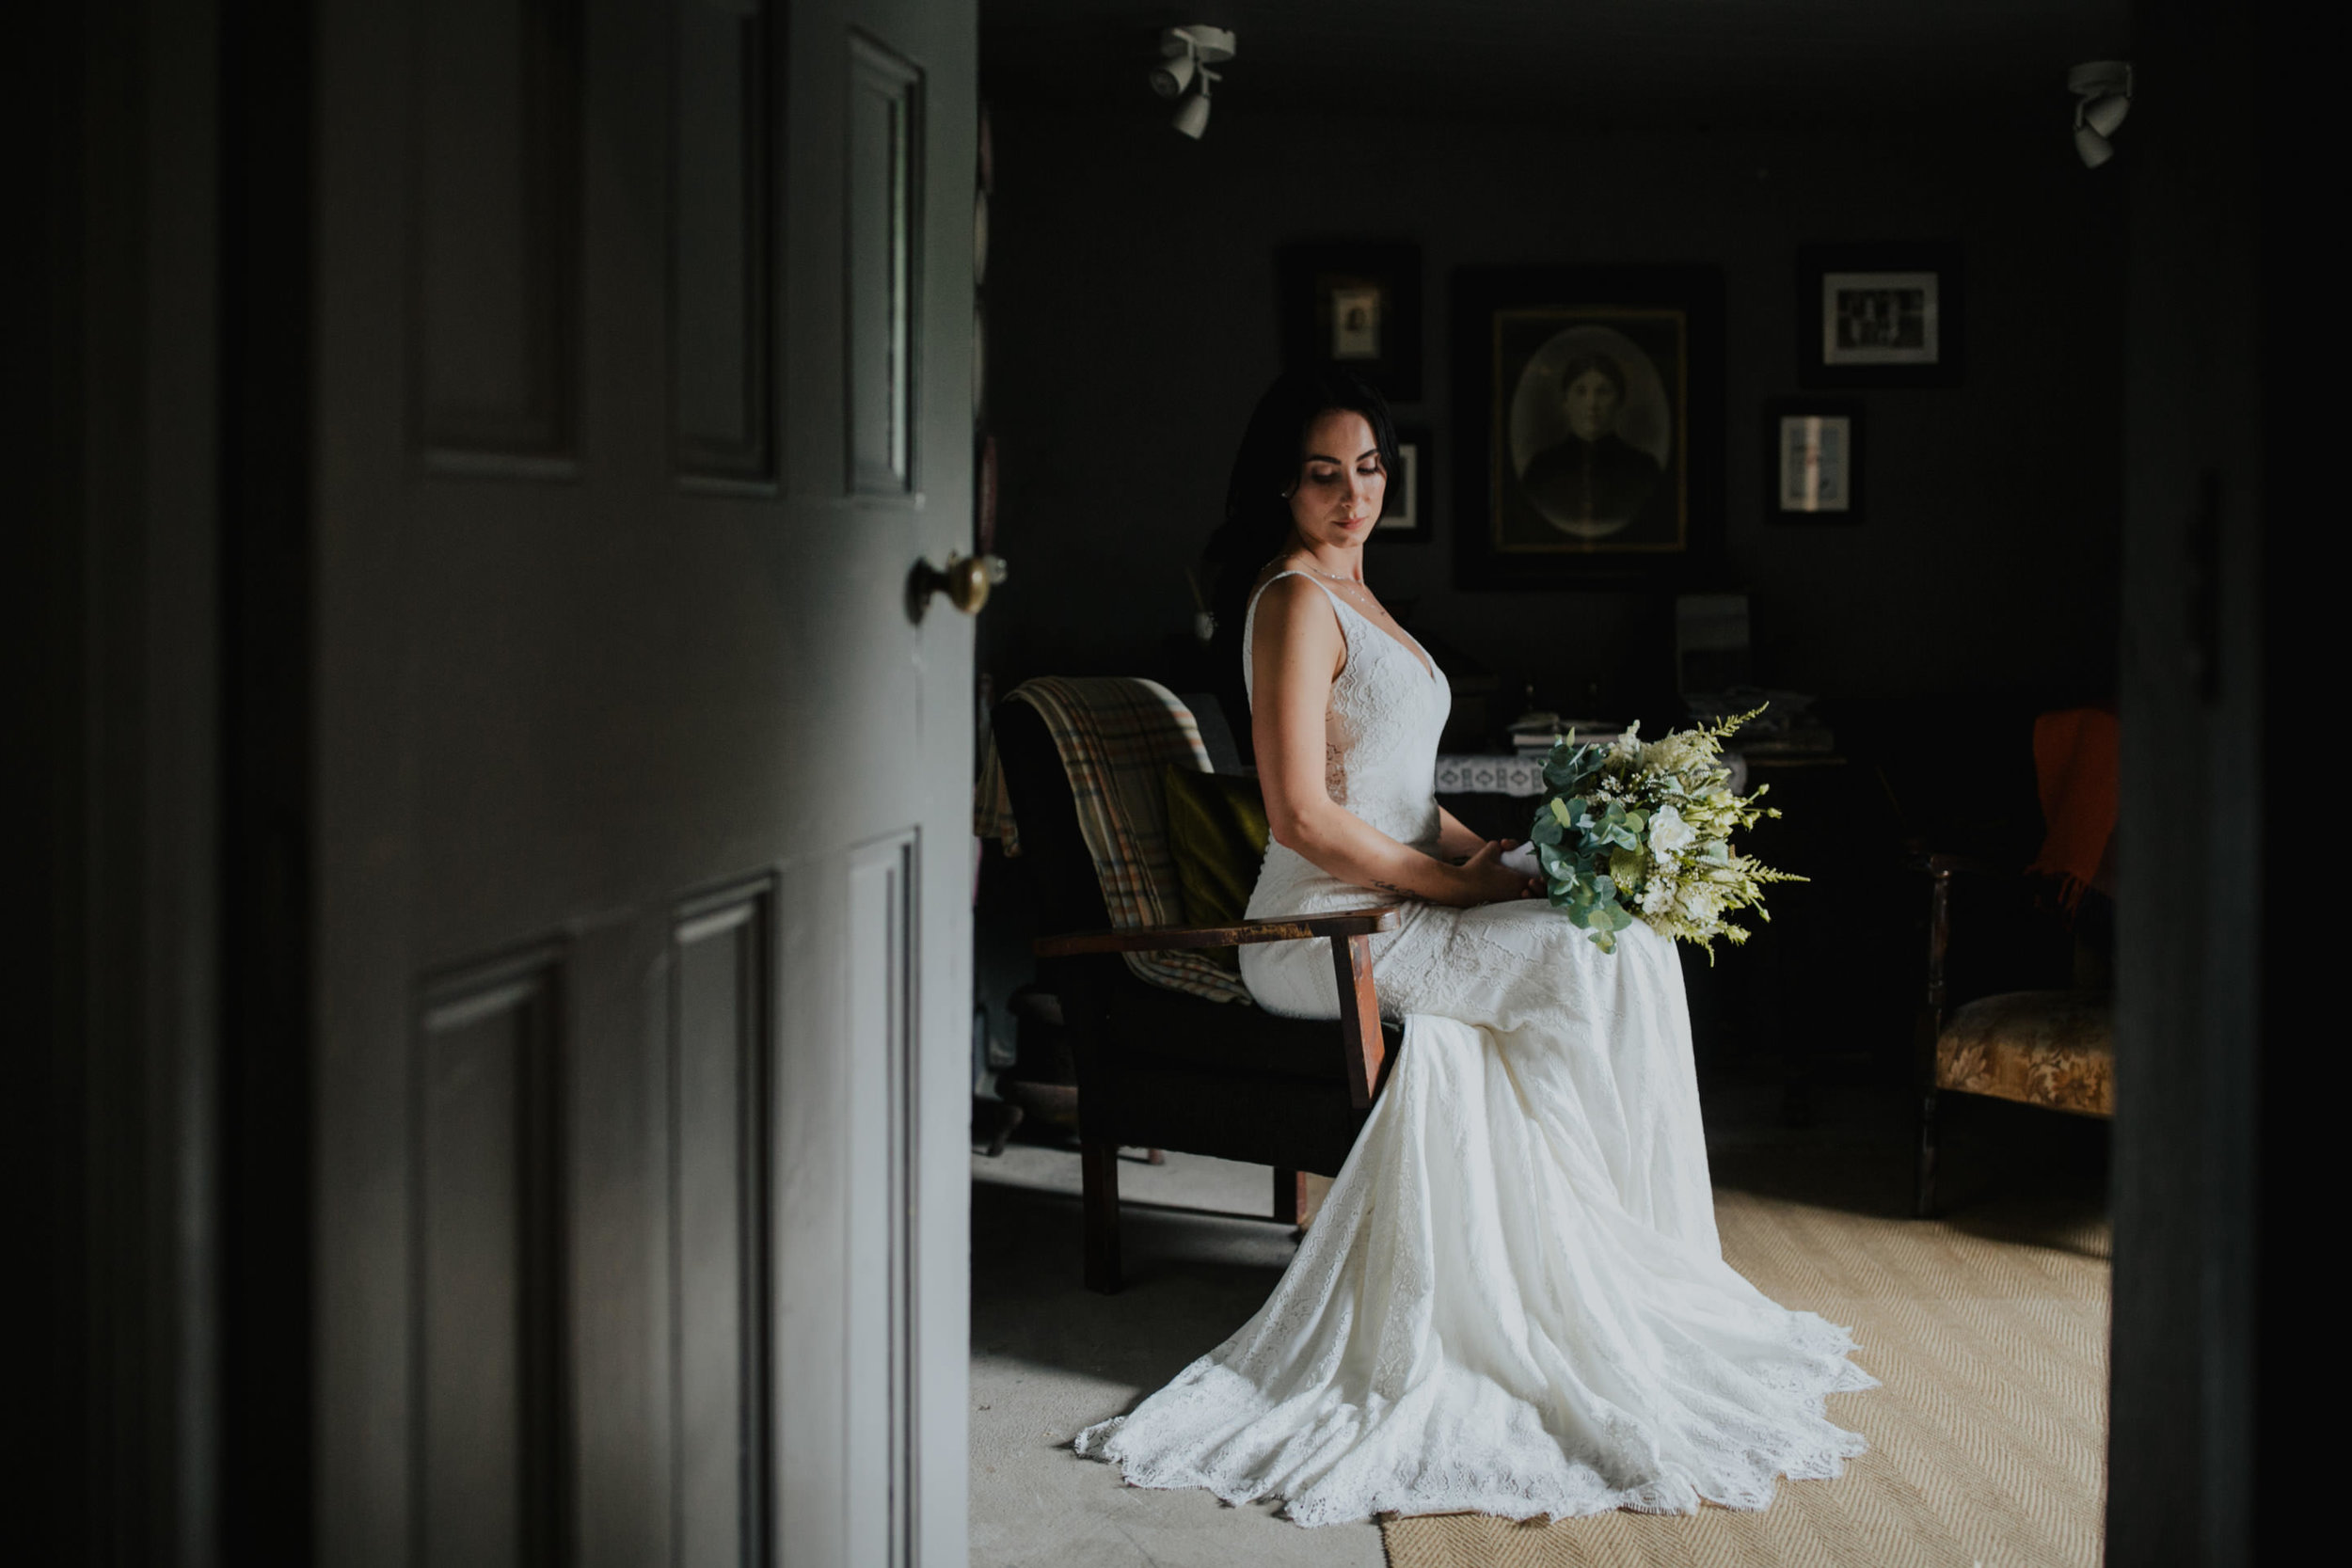 c+r_ballilogue_wedding_kilkenny_wedding_photographer_livia_figueiredo_4.jpg